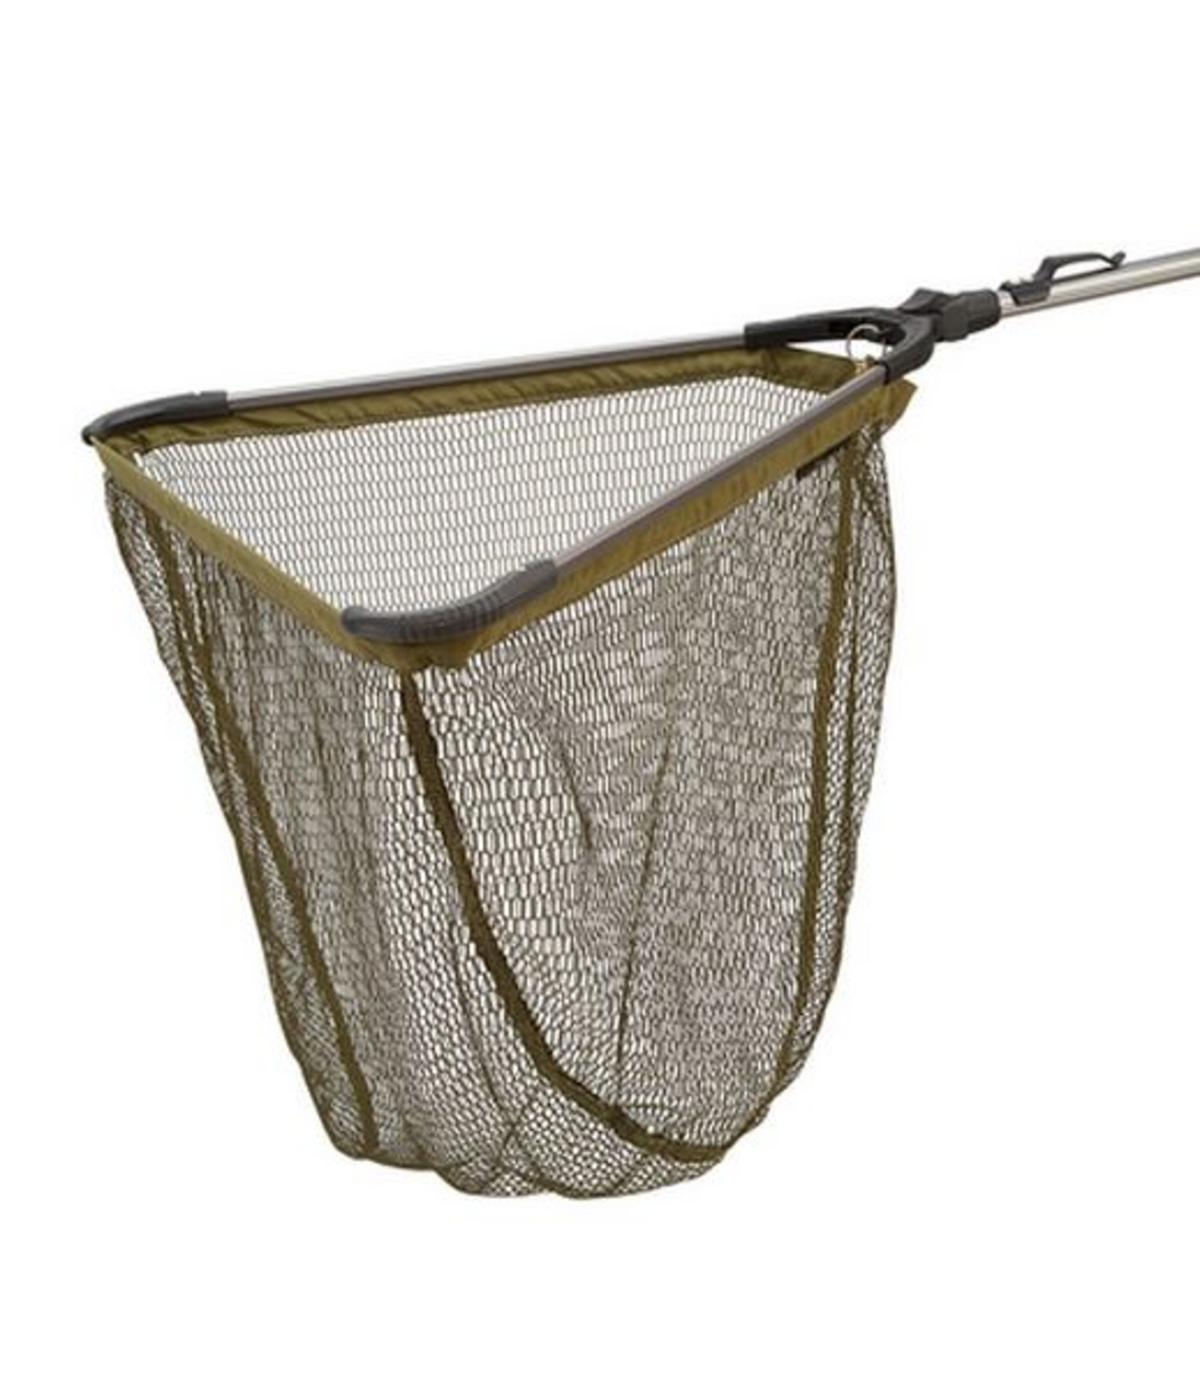 New Daiwa Trout Fishing Folding Telescopic Landing Net 40CM - DTN2